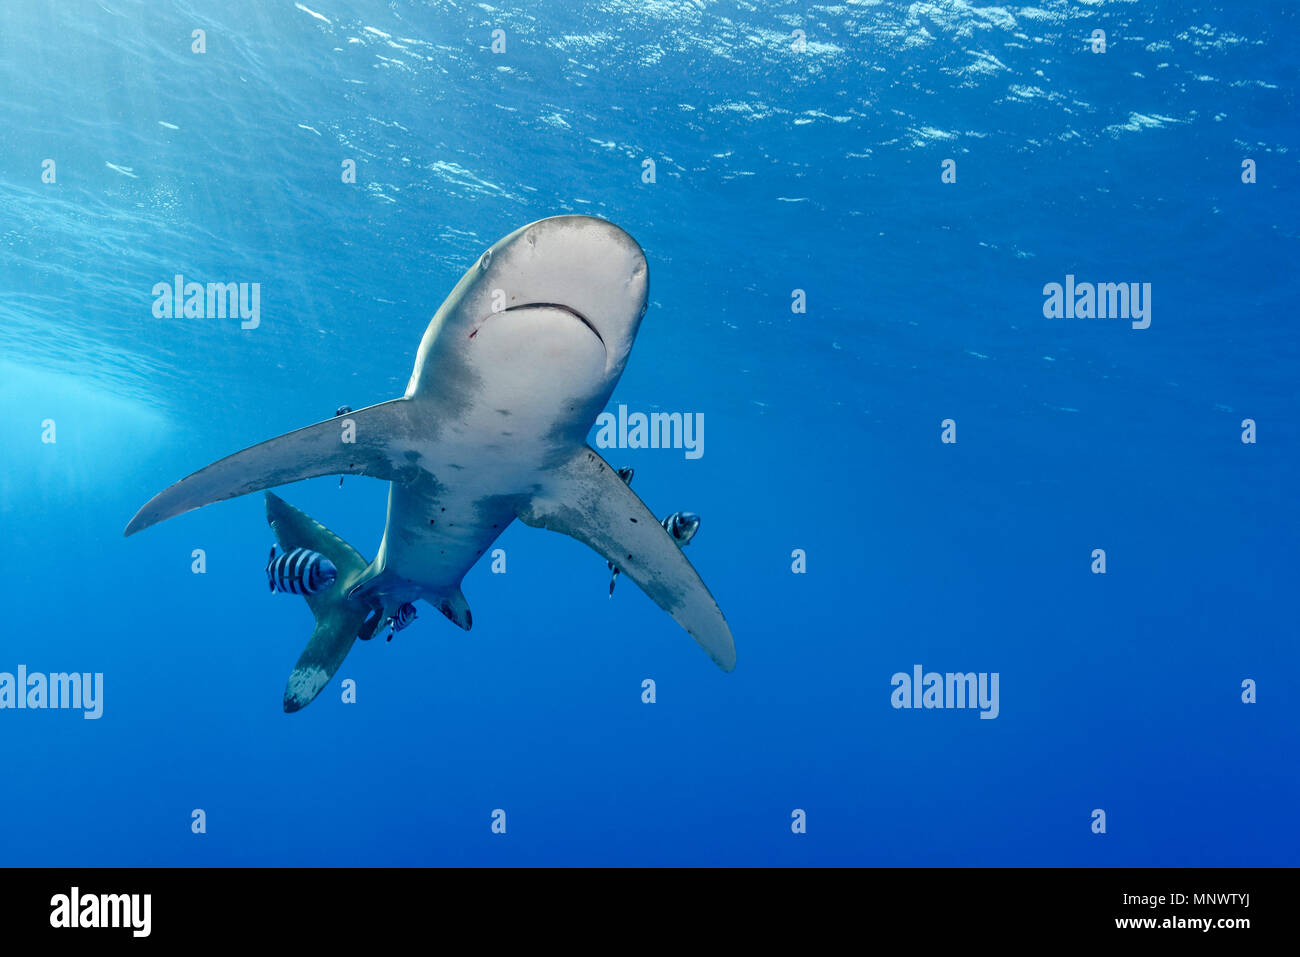 oceanic whitetip shark, Carcharhinus longimanus, with pilot fish, Naucrates ductor,  Daedalus Reef, Egypt, Red Sea, Indian Ocean - Stock Image